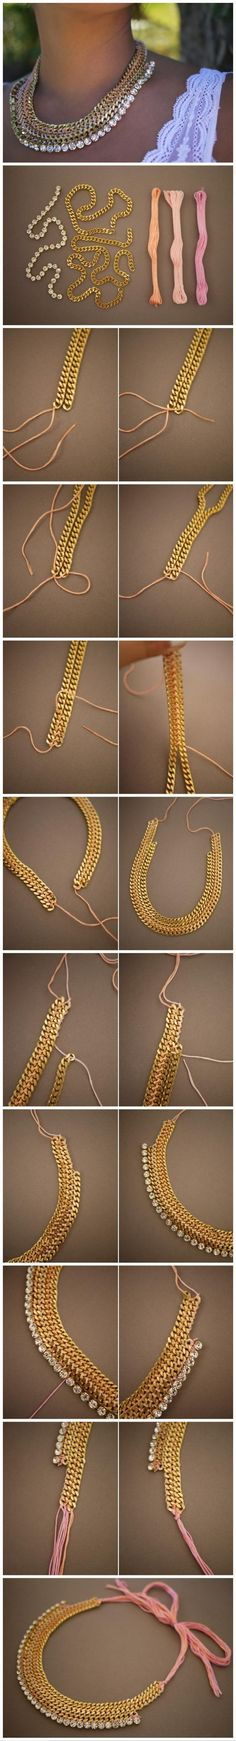 DIY Necklace - Tutorial@ Ami Ruda!! Craft nite!